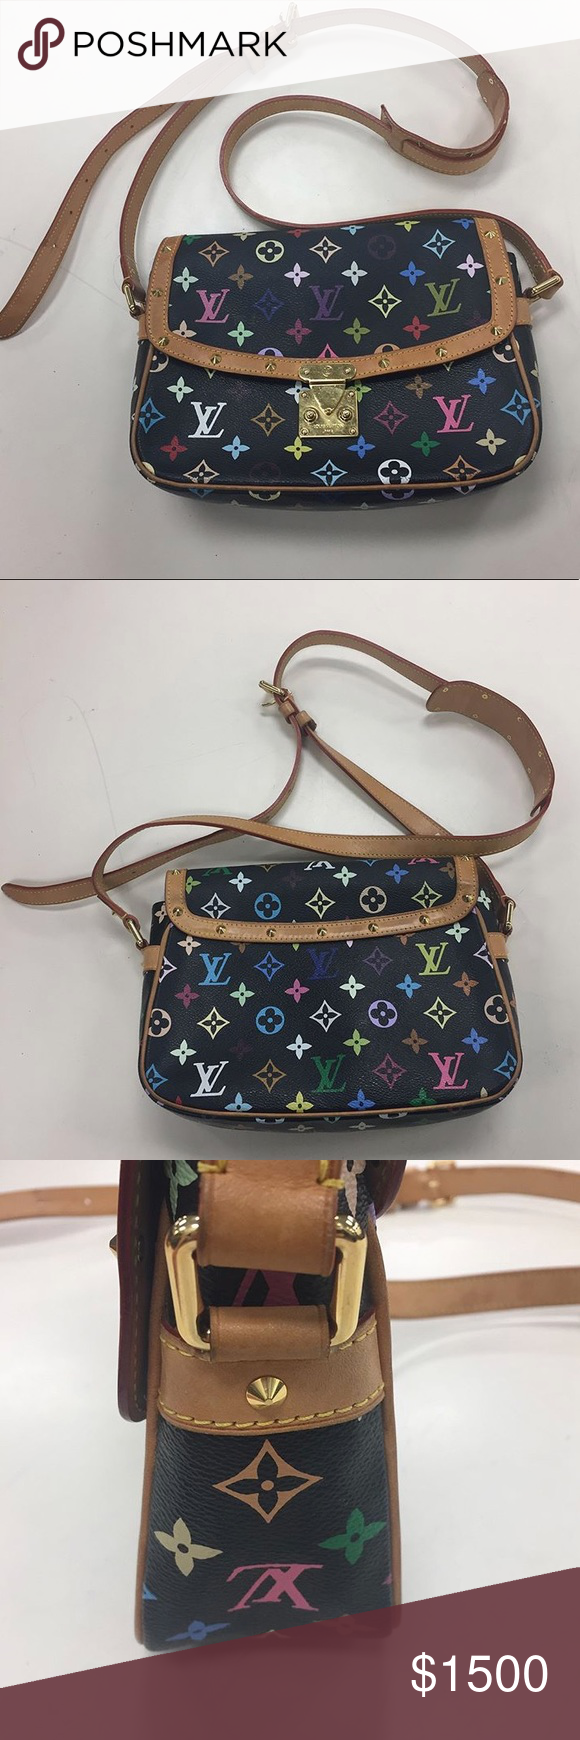 5bee074ef3a Louis Vuitton Sologne multicolor crossbody rare Great condition please  inquire for more details on this rare